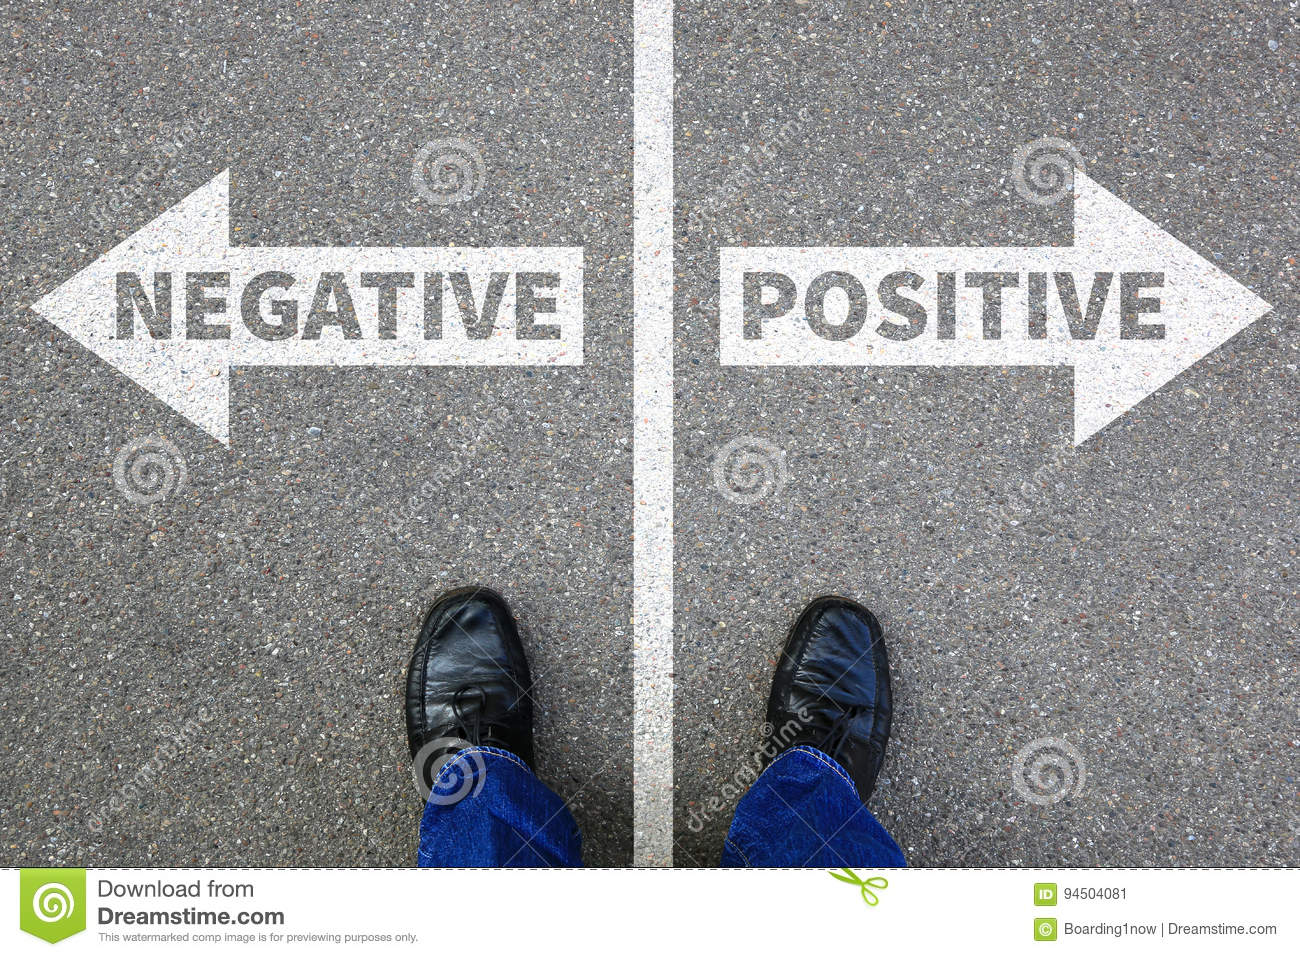 Negative positive thinking good bad thoughts attitude business c